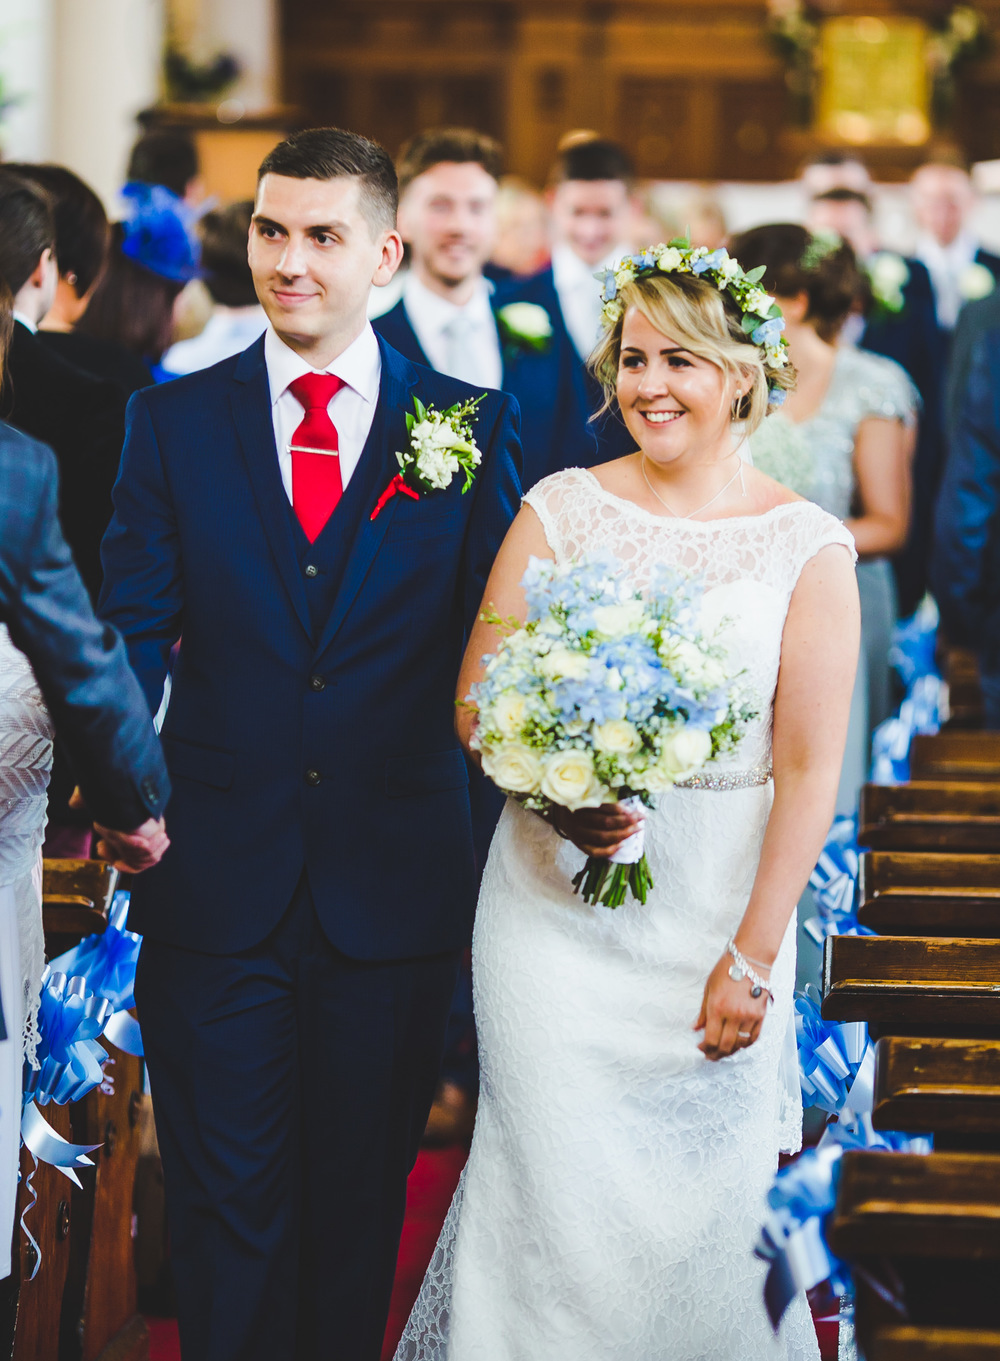 The bride and groom walking back down the aisle- Documentary wedding photographer